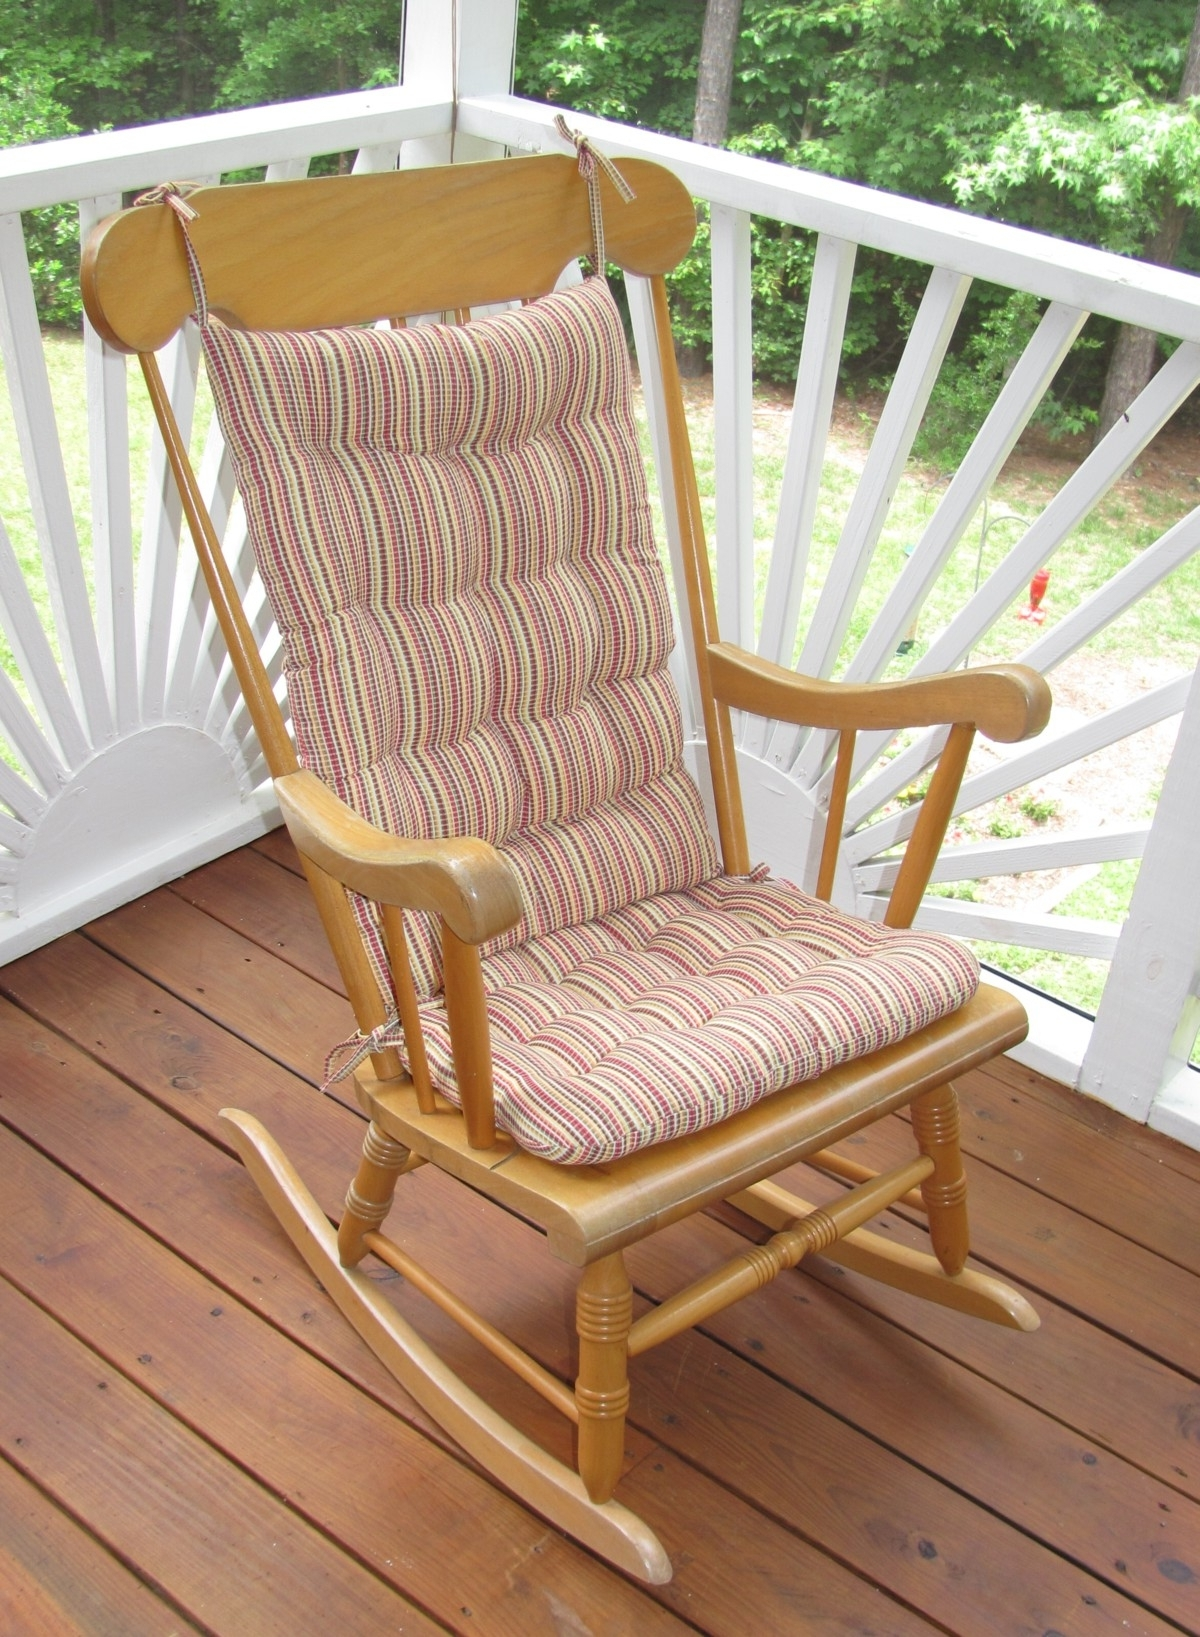 2017 Rocking Chair Cushions For Outdoor Regarding Outdoor Rocking Chair Cushions Type : Beautiful Outdoor Rocking (View 14 of 15)